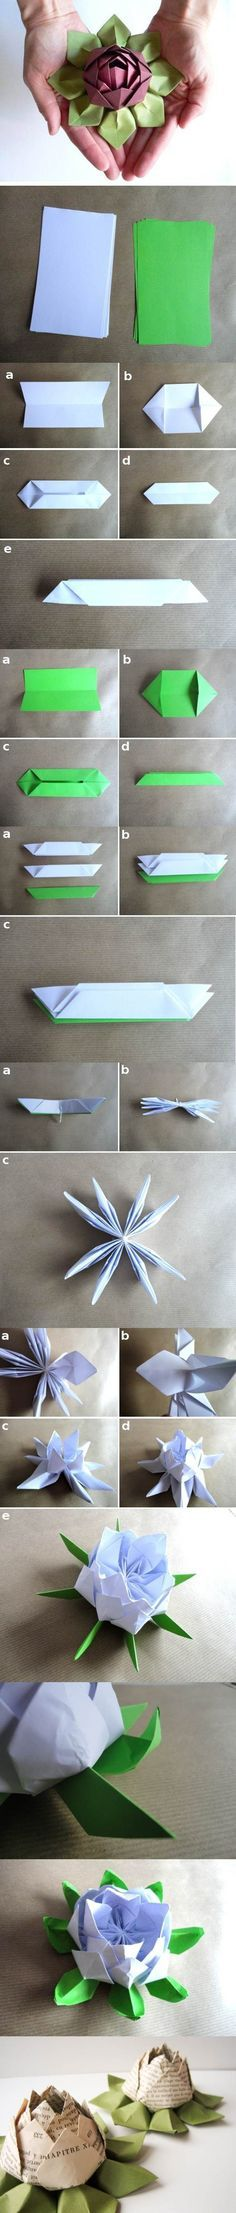 DIY Paper Lotus Flower Tutorial